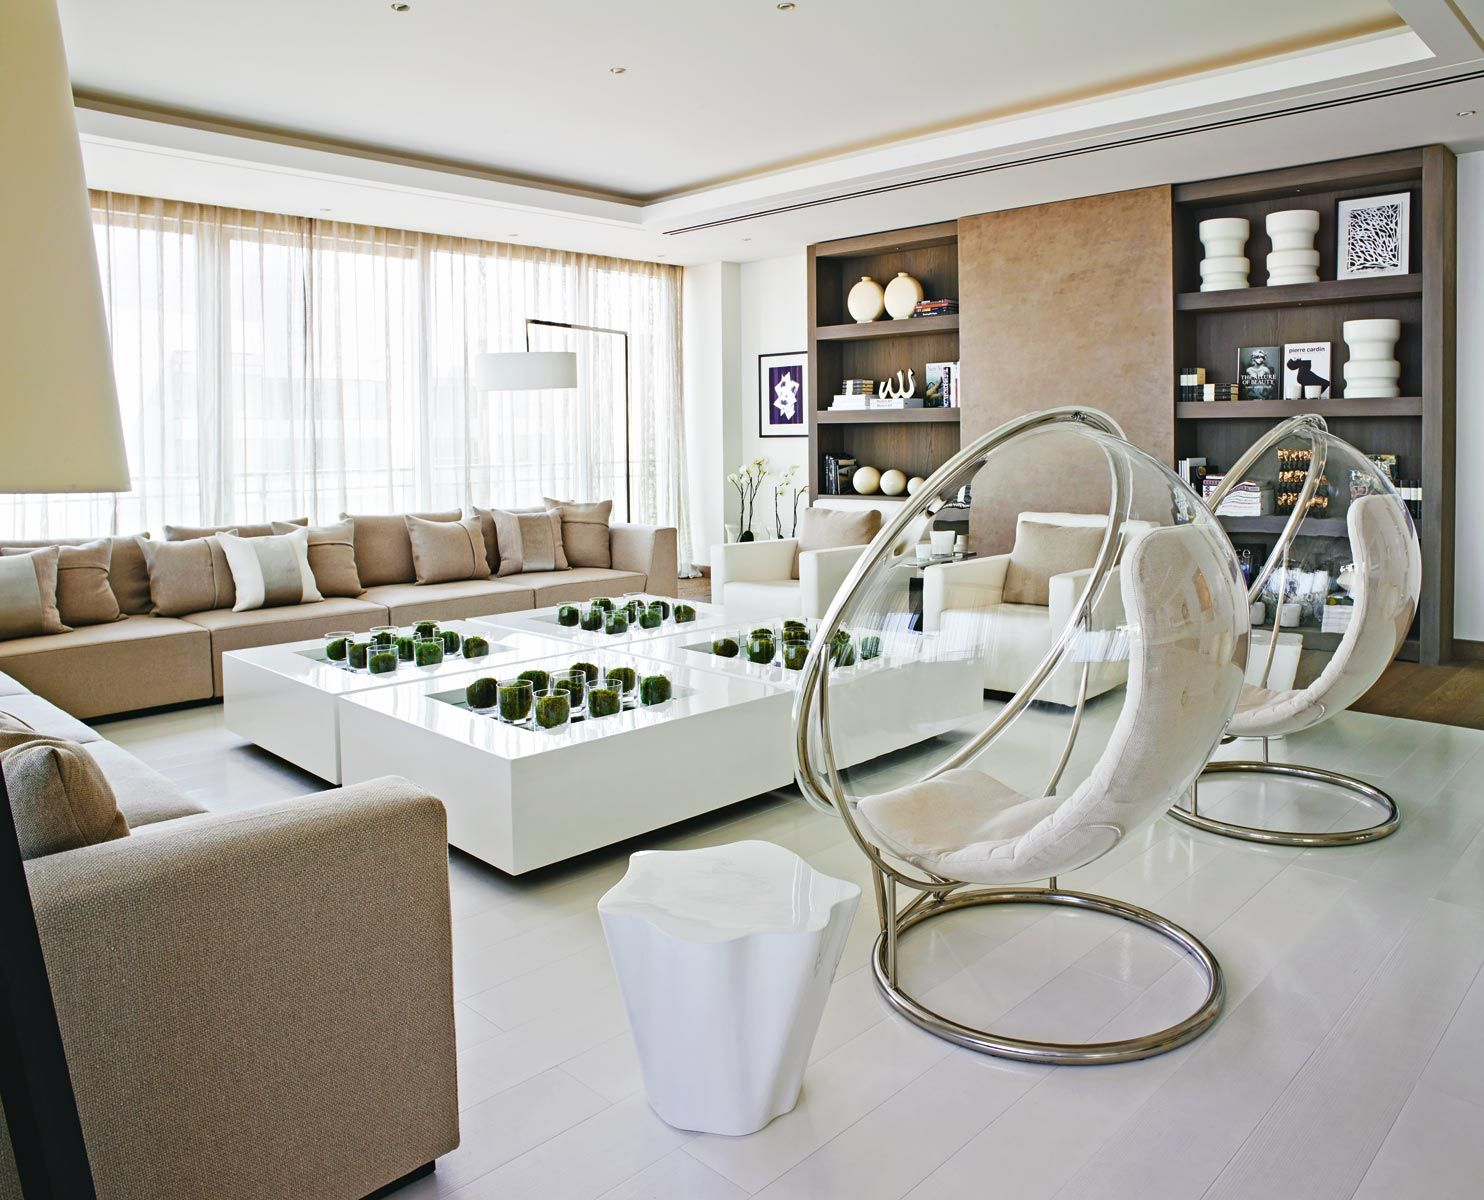 Top 10 Kelly Hoppen Design Ideas | Kelly hoppen, Top interior ...